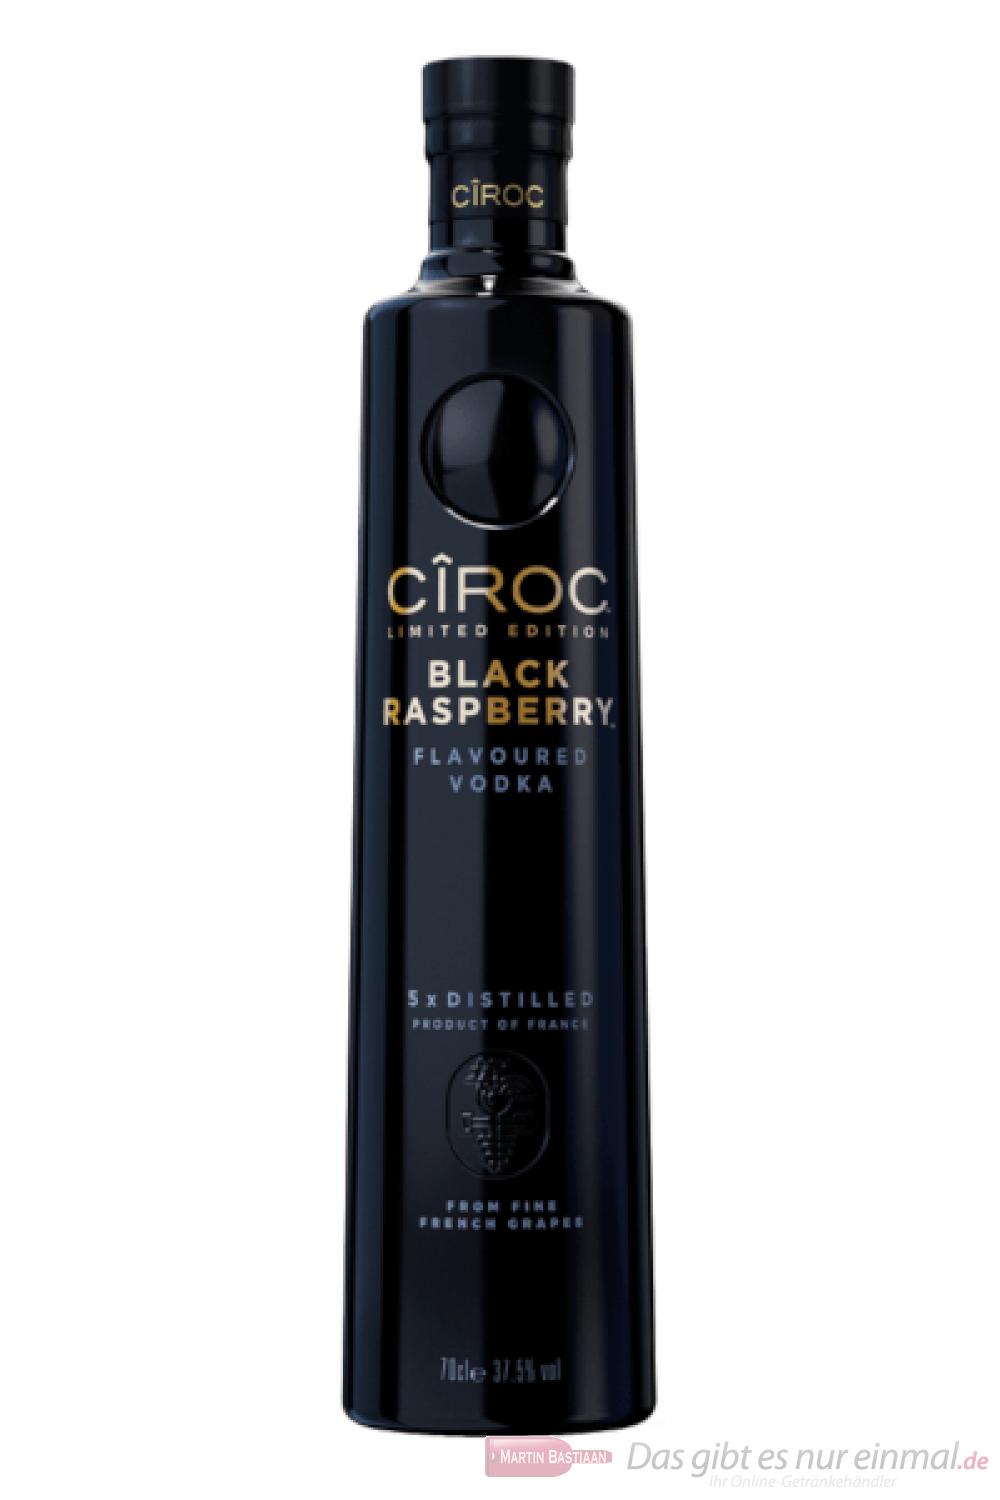 Ciroc Black Raspberry Flavoured Vodka 0,7l